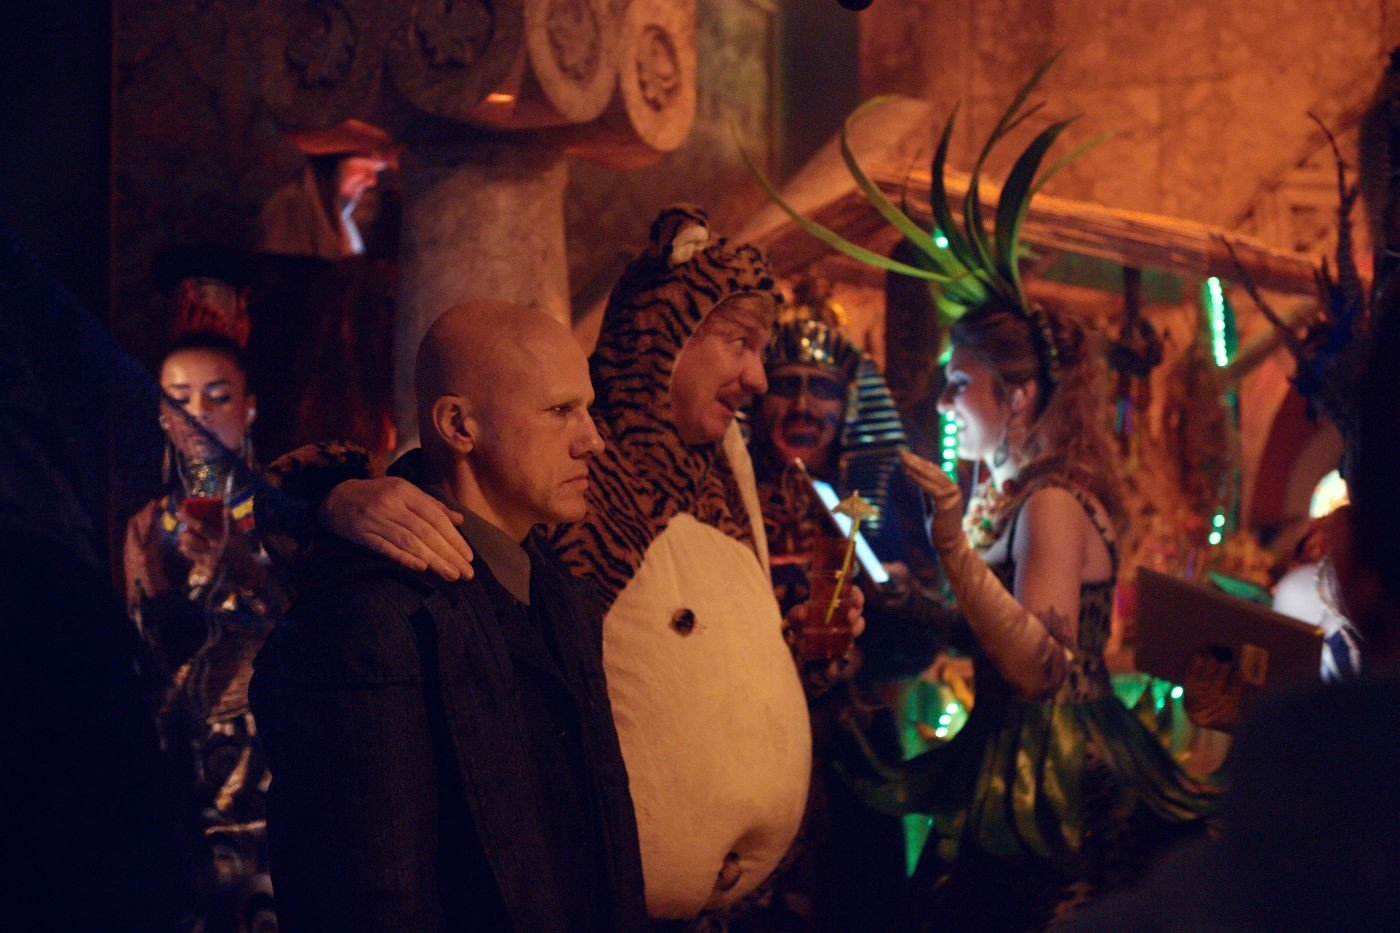 Fantasy and Reality Are Blurred in 'The Zero Theorem' New Trailer